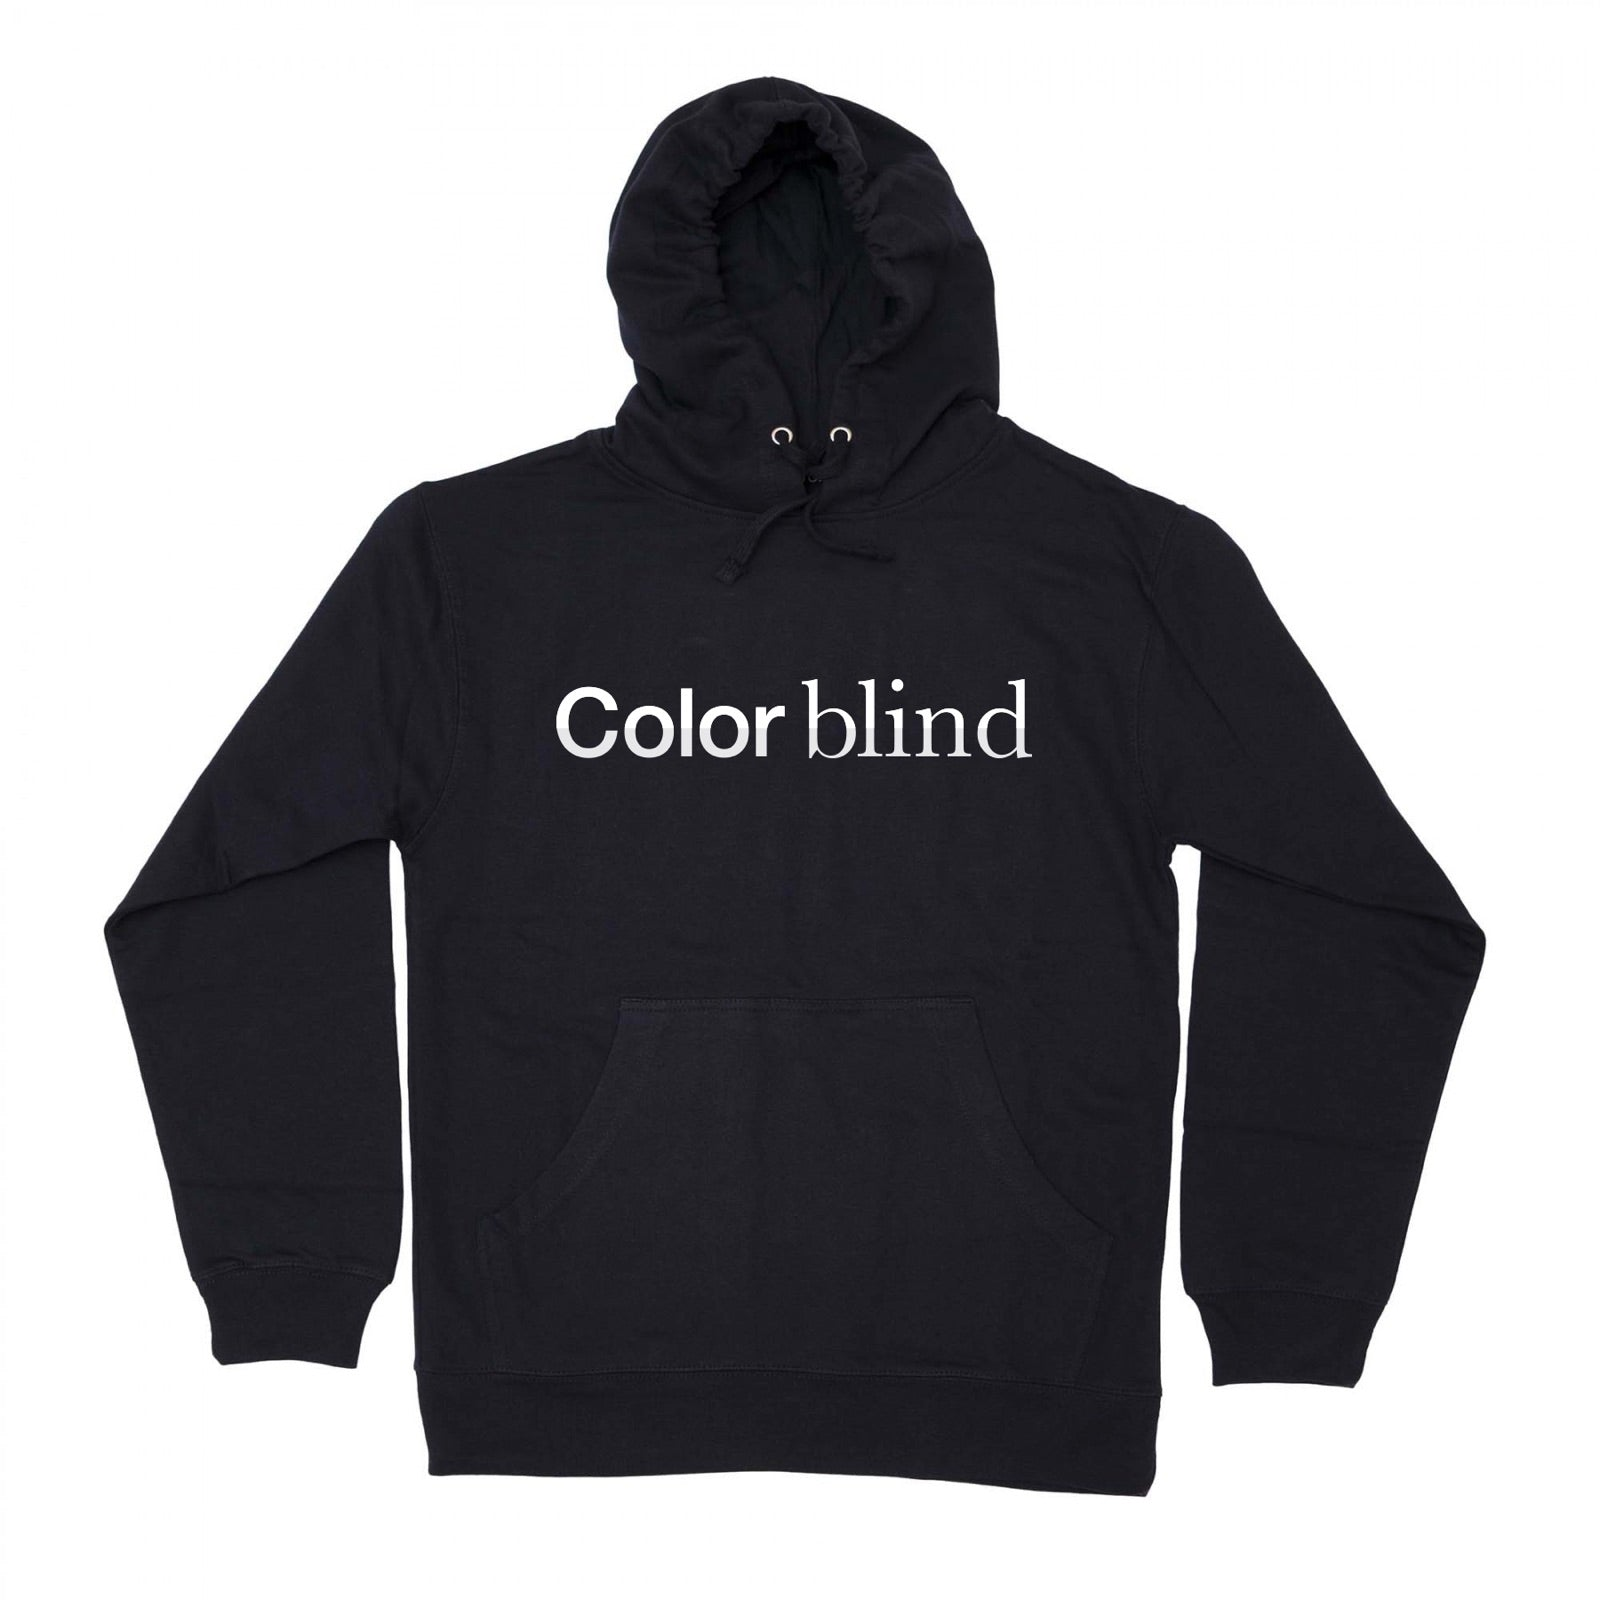 WarholKids x Jason M Peterson Hooded Sweatshirt